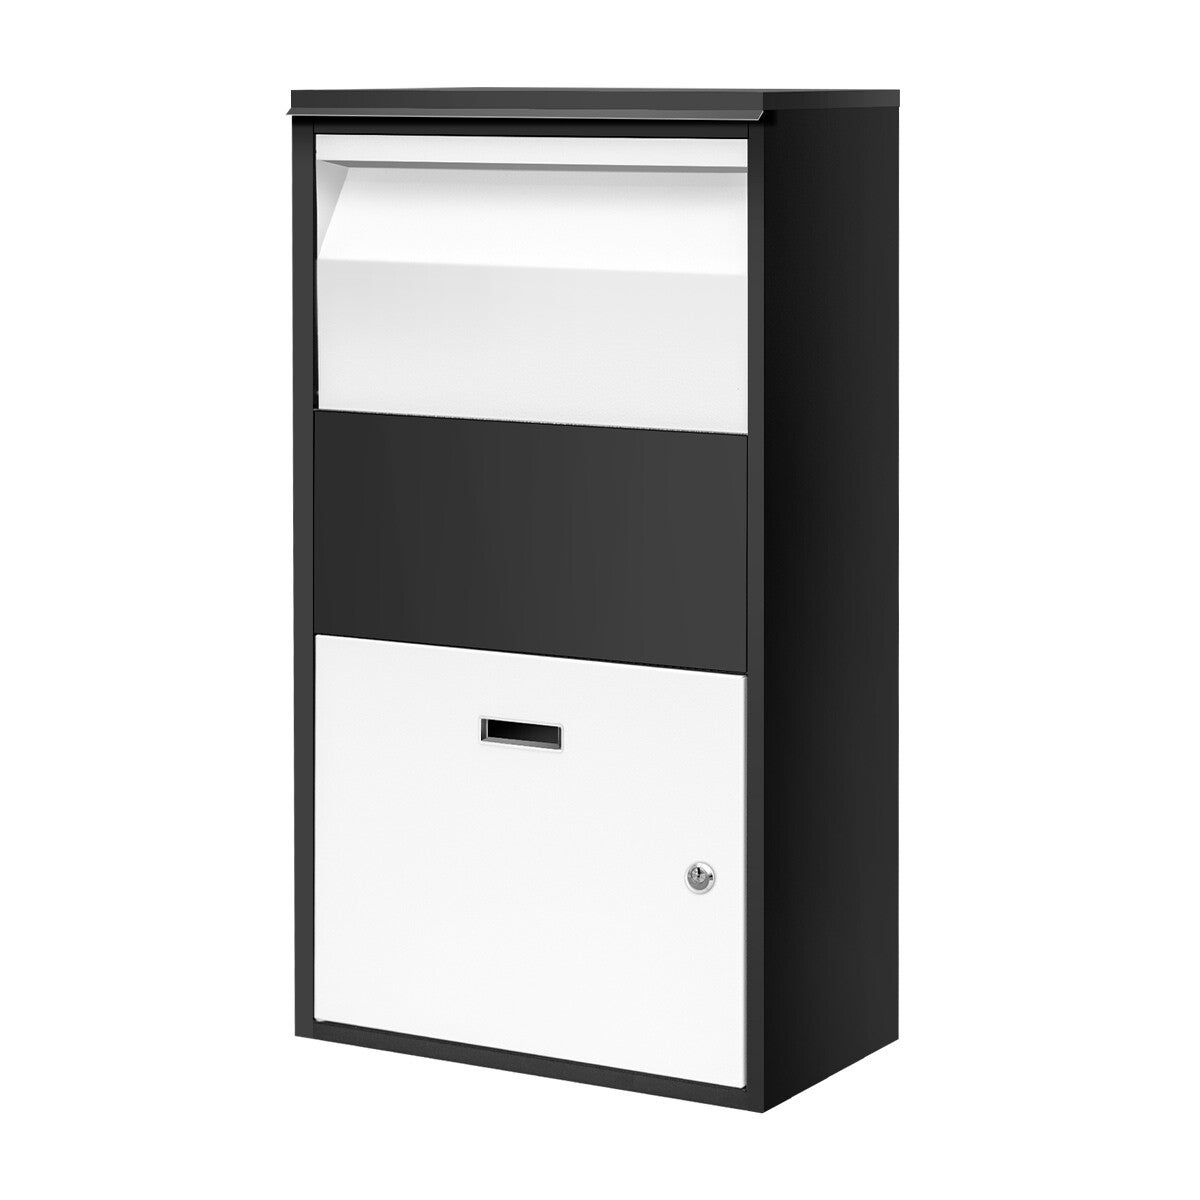 Metal Letter Box Lockable Post Mail Box Parcel Letterbox Mailbox for A4 Mail 30x18x18cm Package